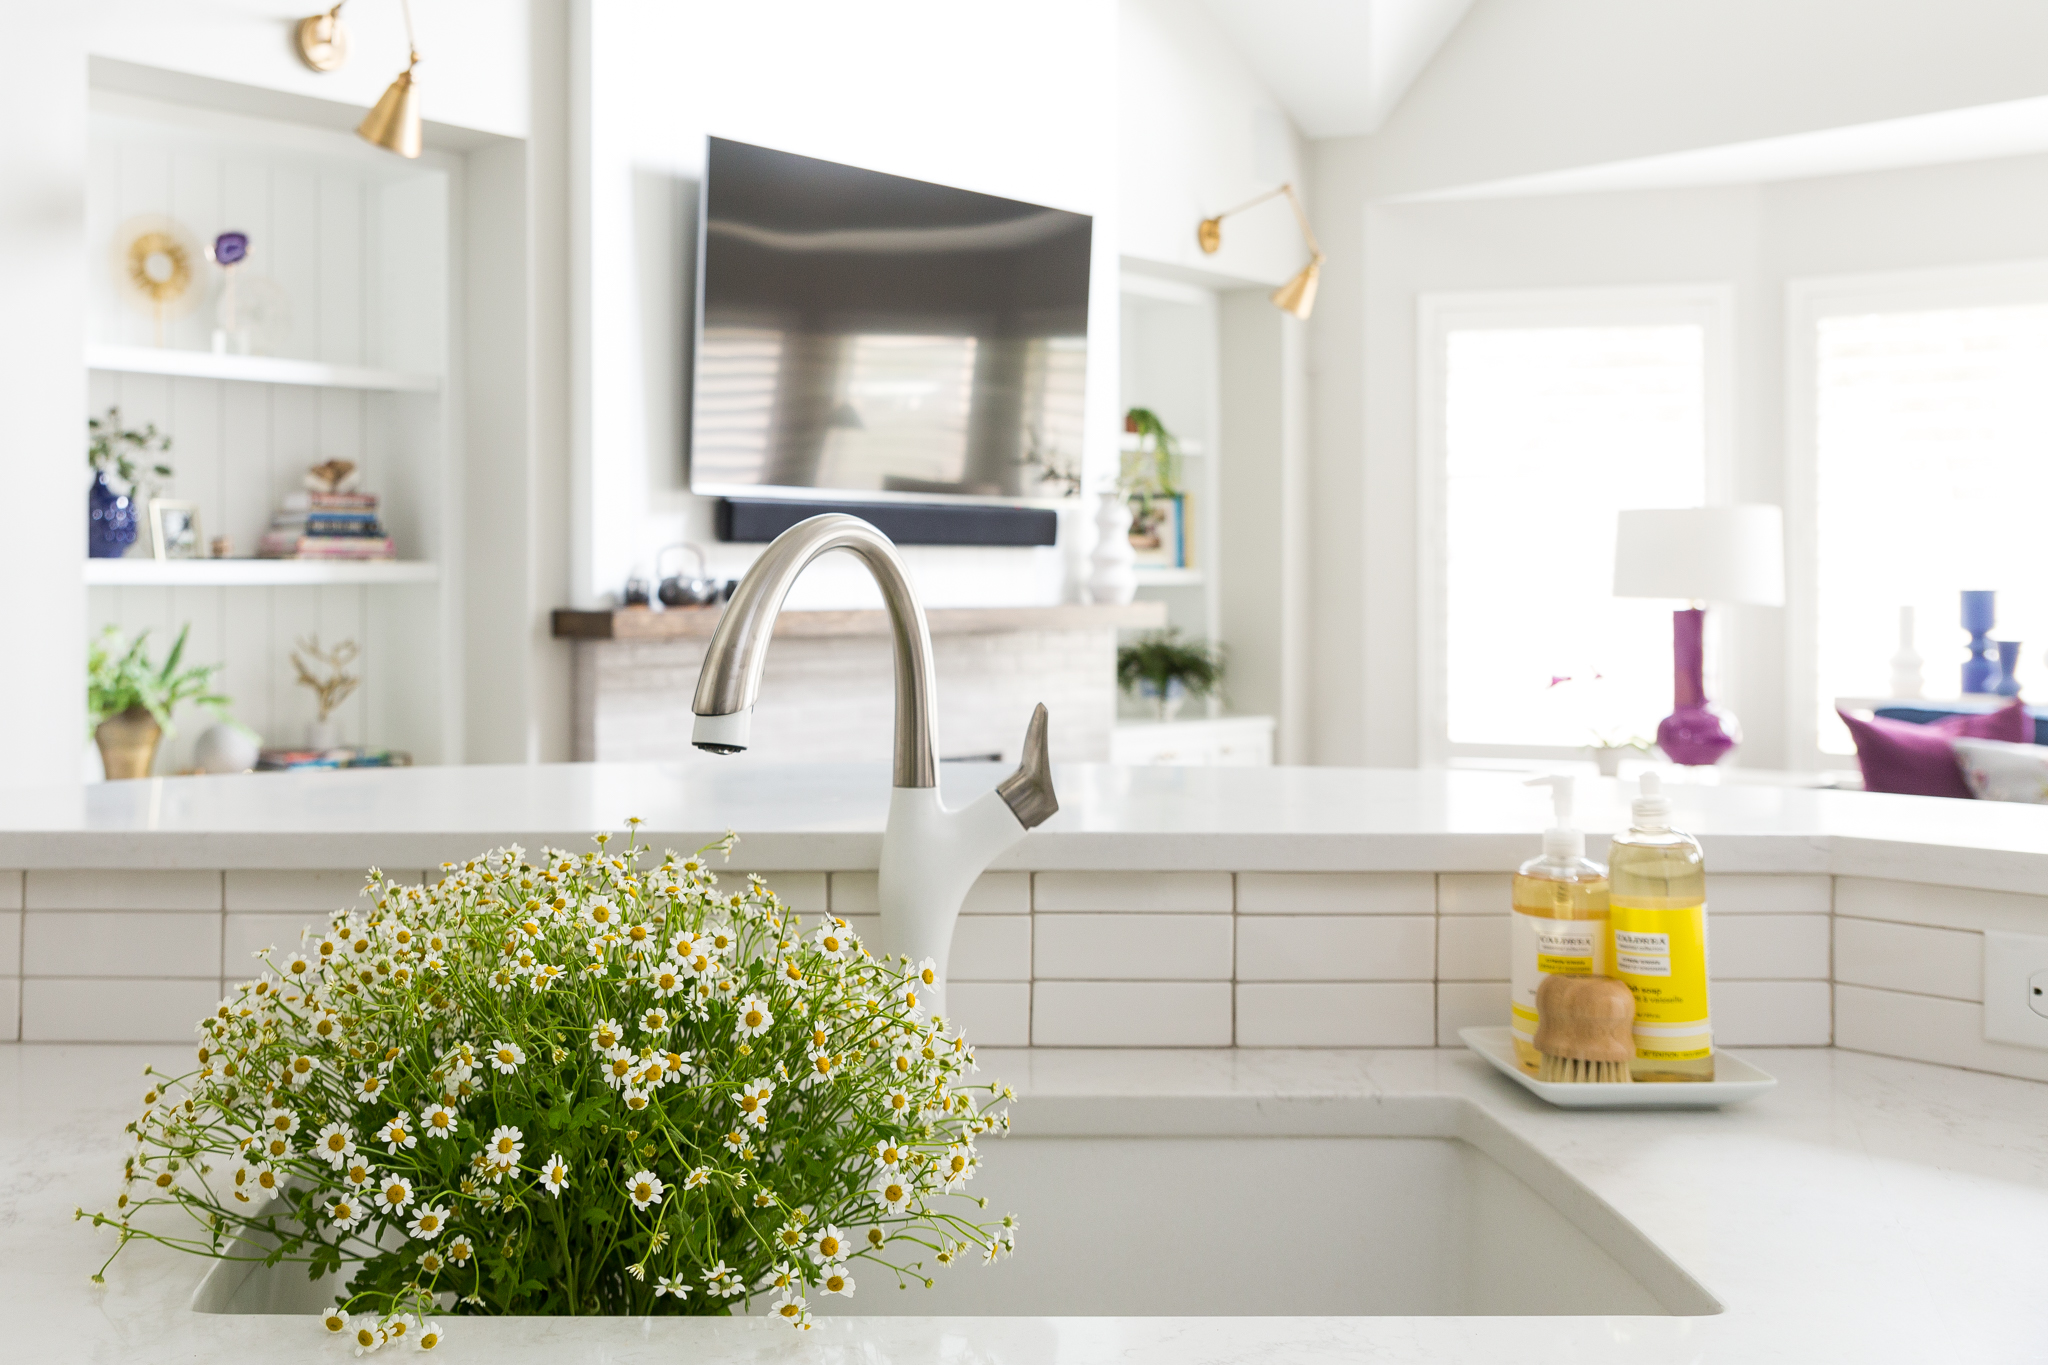 BEFORE AND AFTER - A navy and white kitchen remodel w/ white faucet | Carla Aston, Designer | Colleen Scott, Photographer